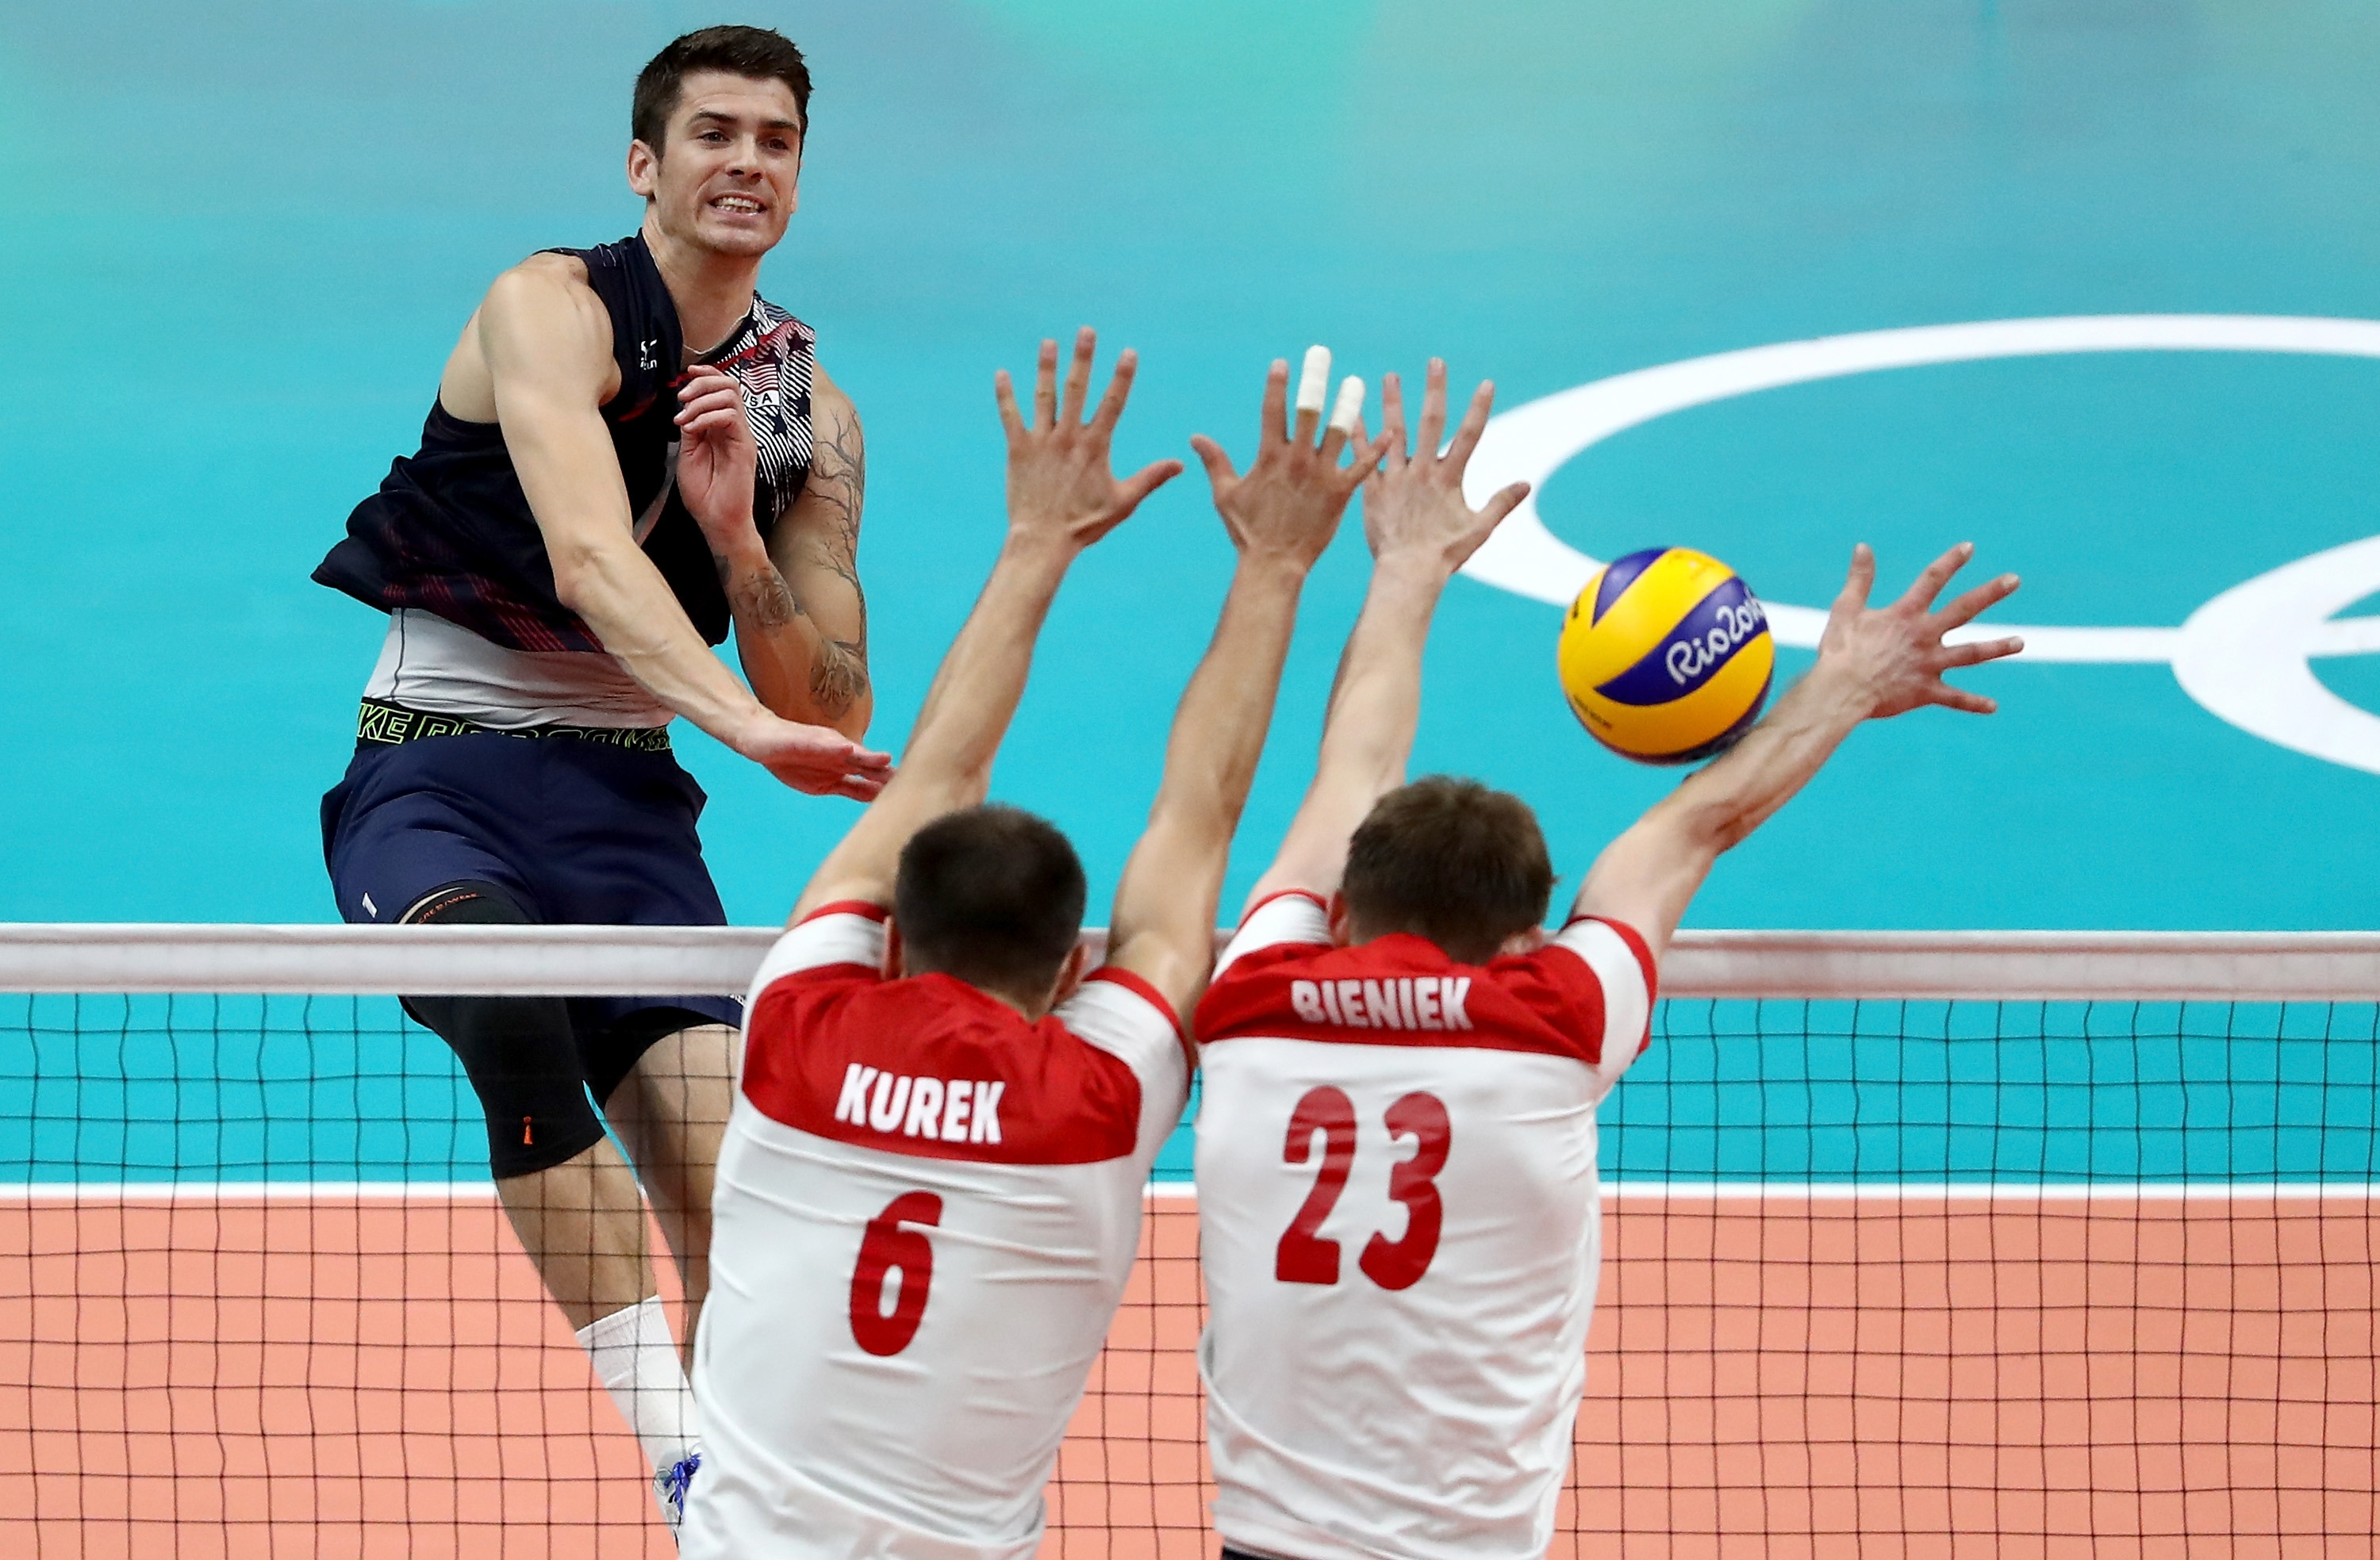 Matt Anderson of United States spikes past Bartosz Kurek and Mateusz Bieniek of Poland in the men's quarterfinal volleyball match on Wednesday.